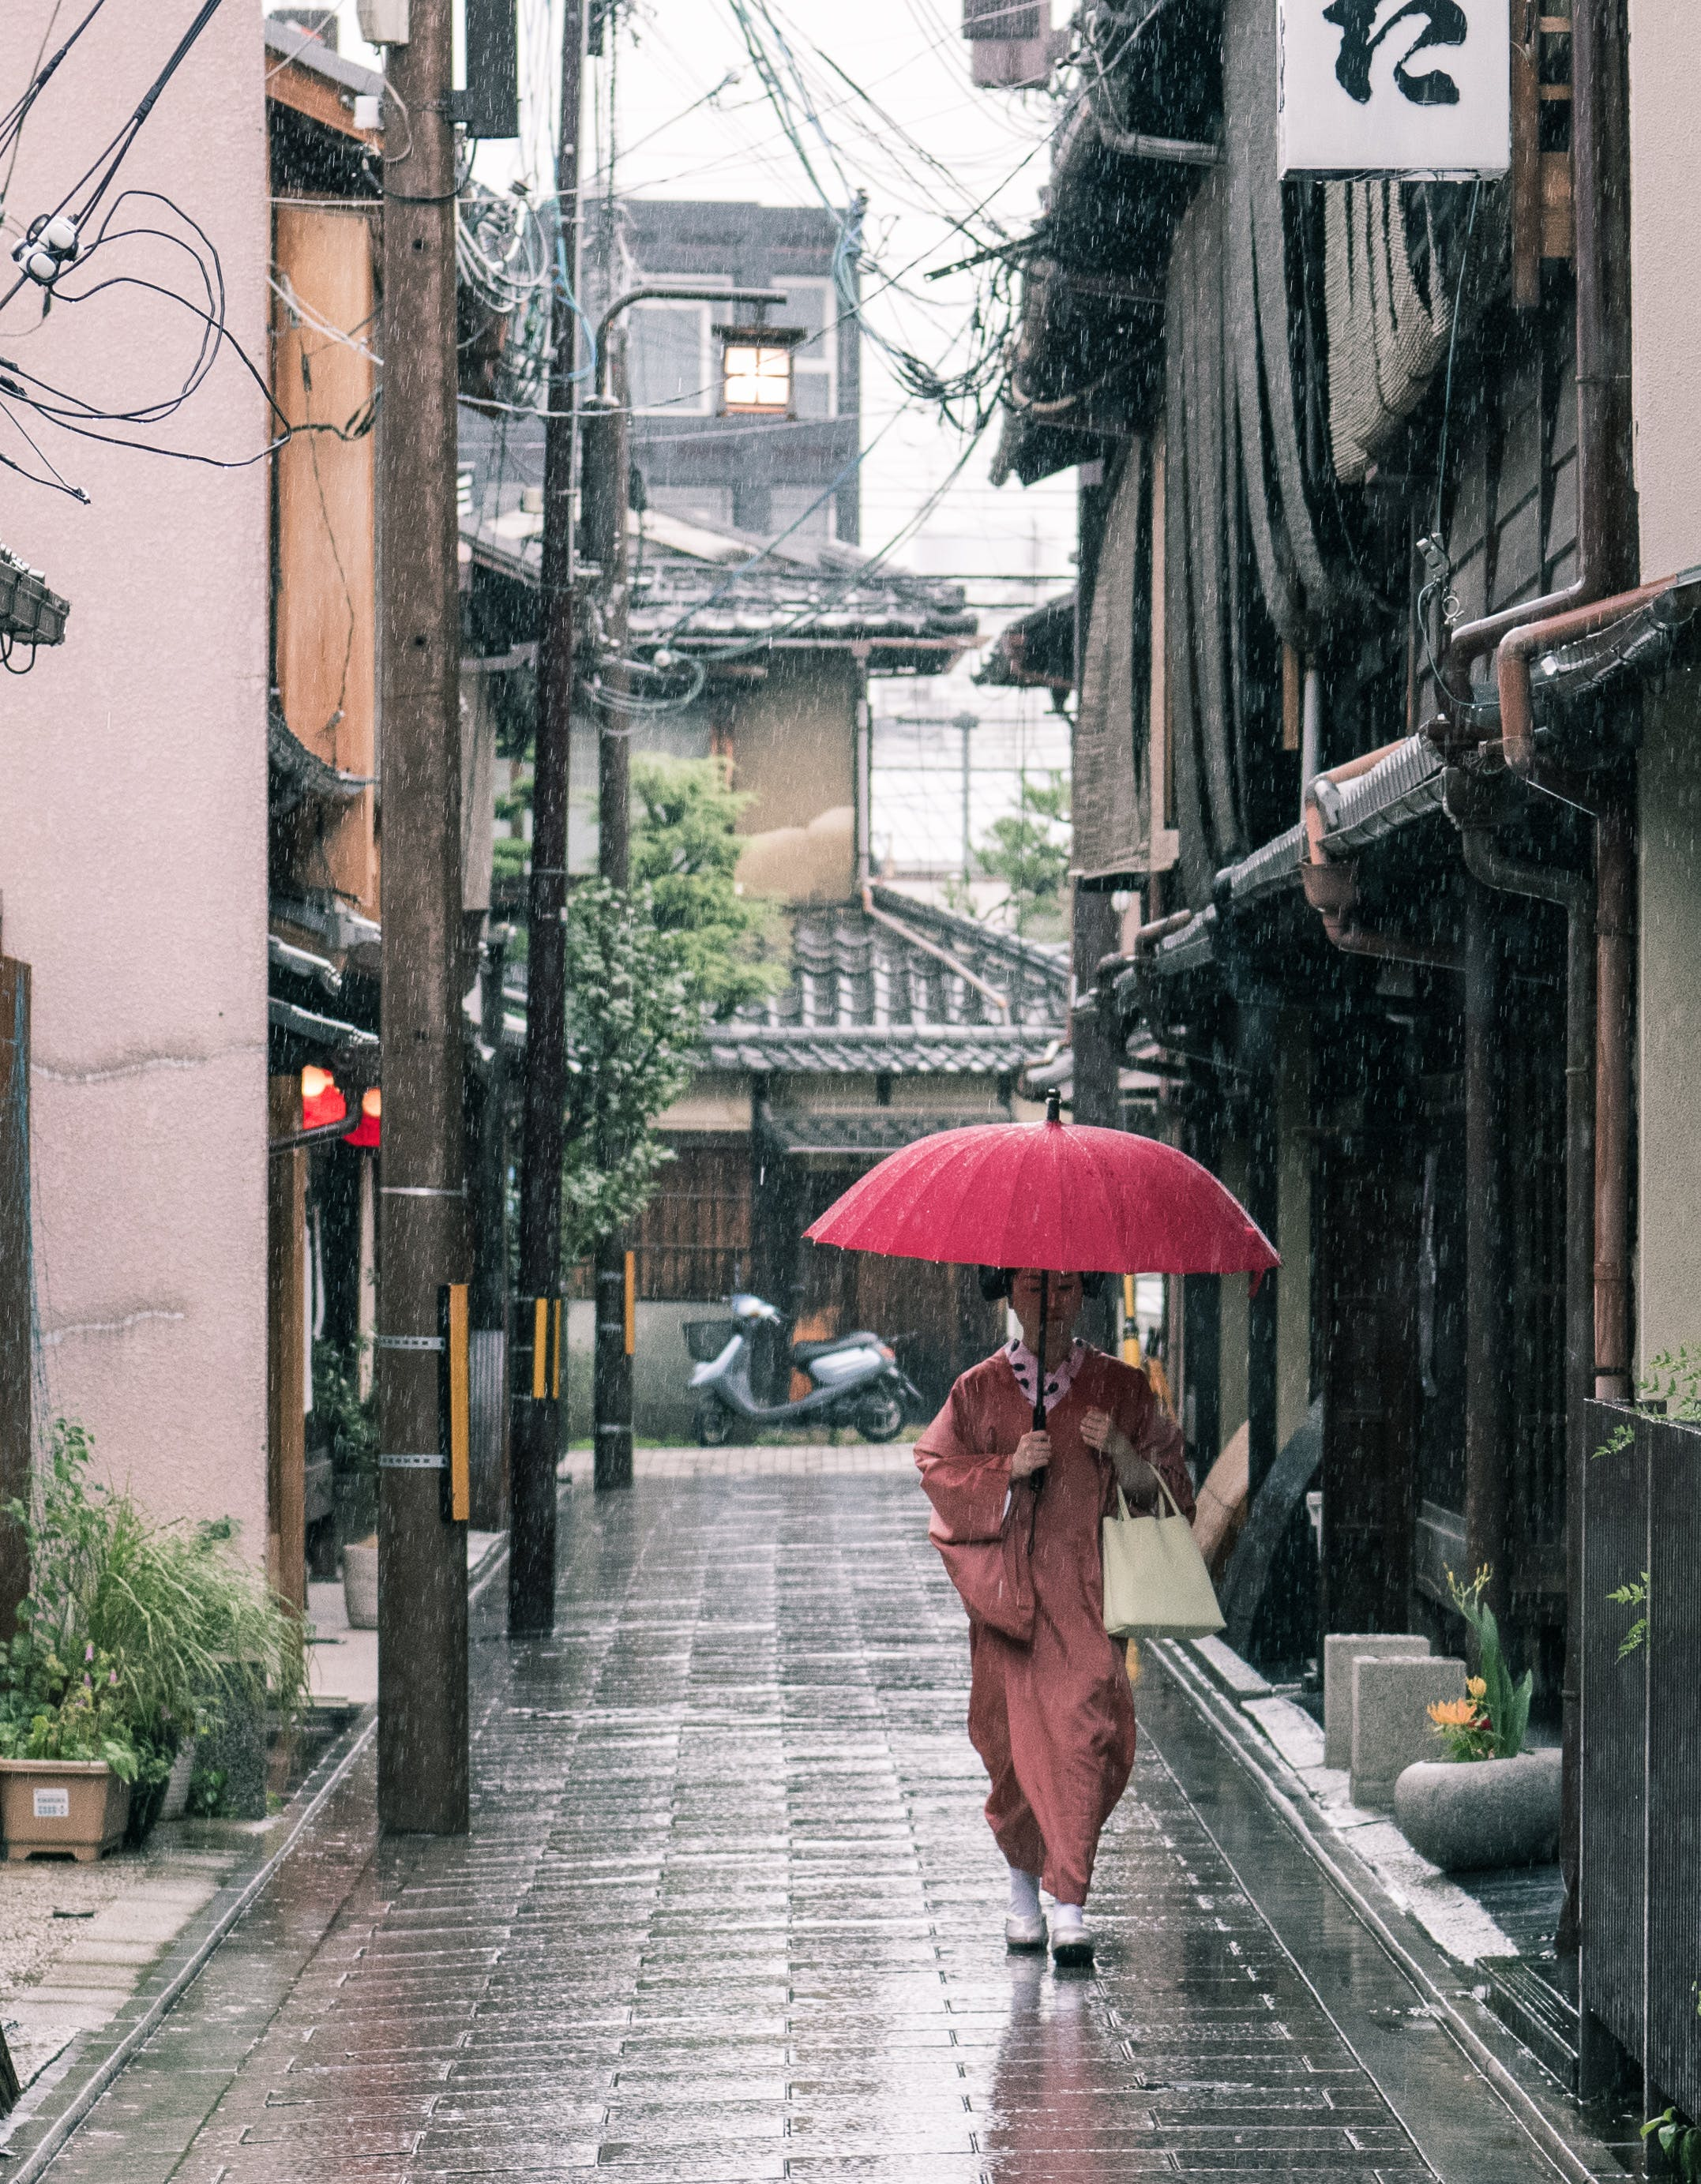 Woman in Brown Robe Holding Umbrella Walking on Concrete Pathway